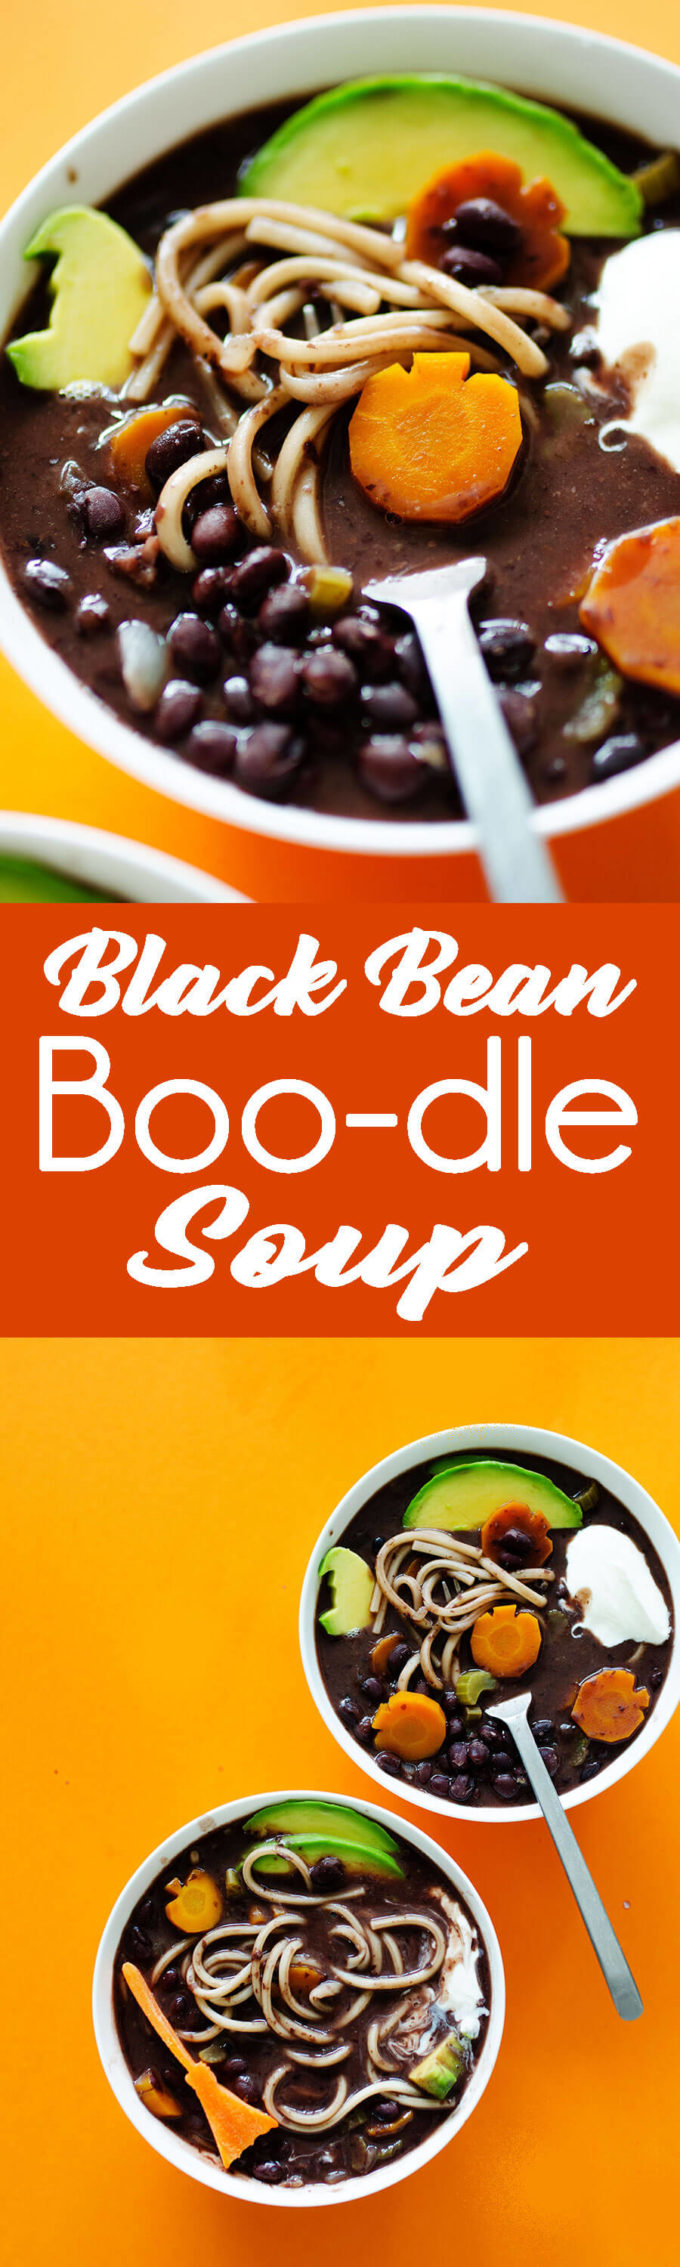 "Black Blean Noodle Soup with fun halloween shapes to make it ""scary good"" soup for Halloween."